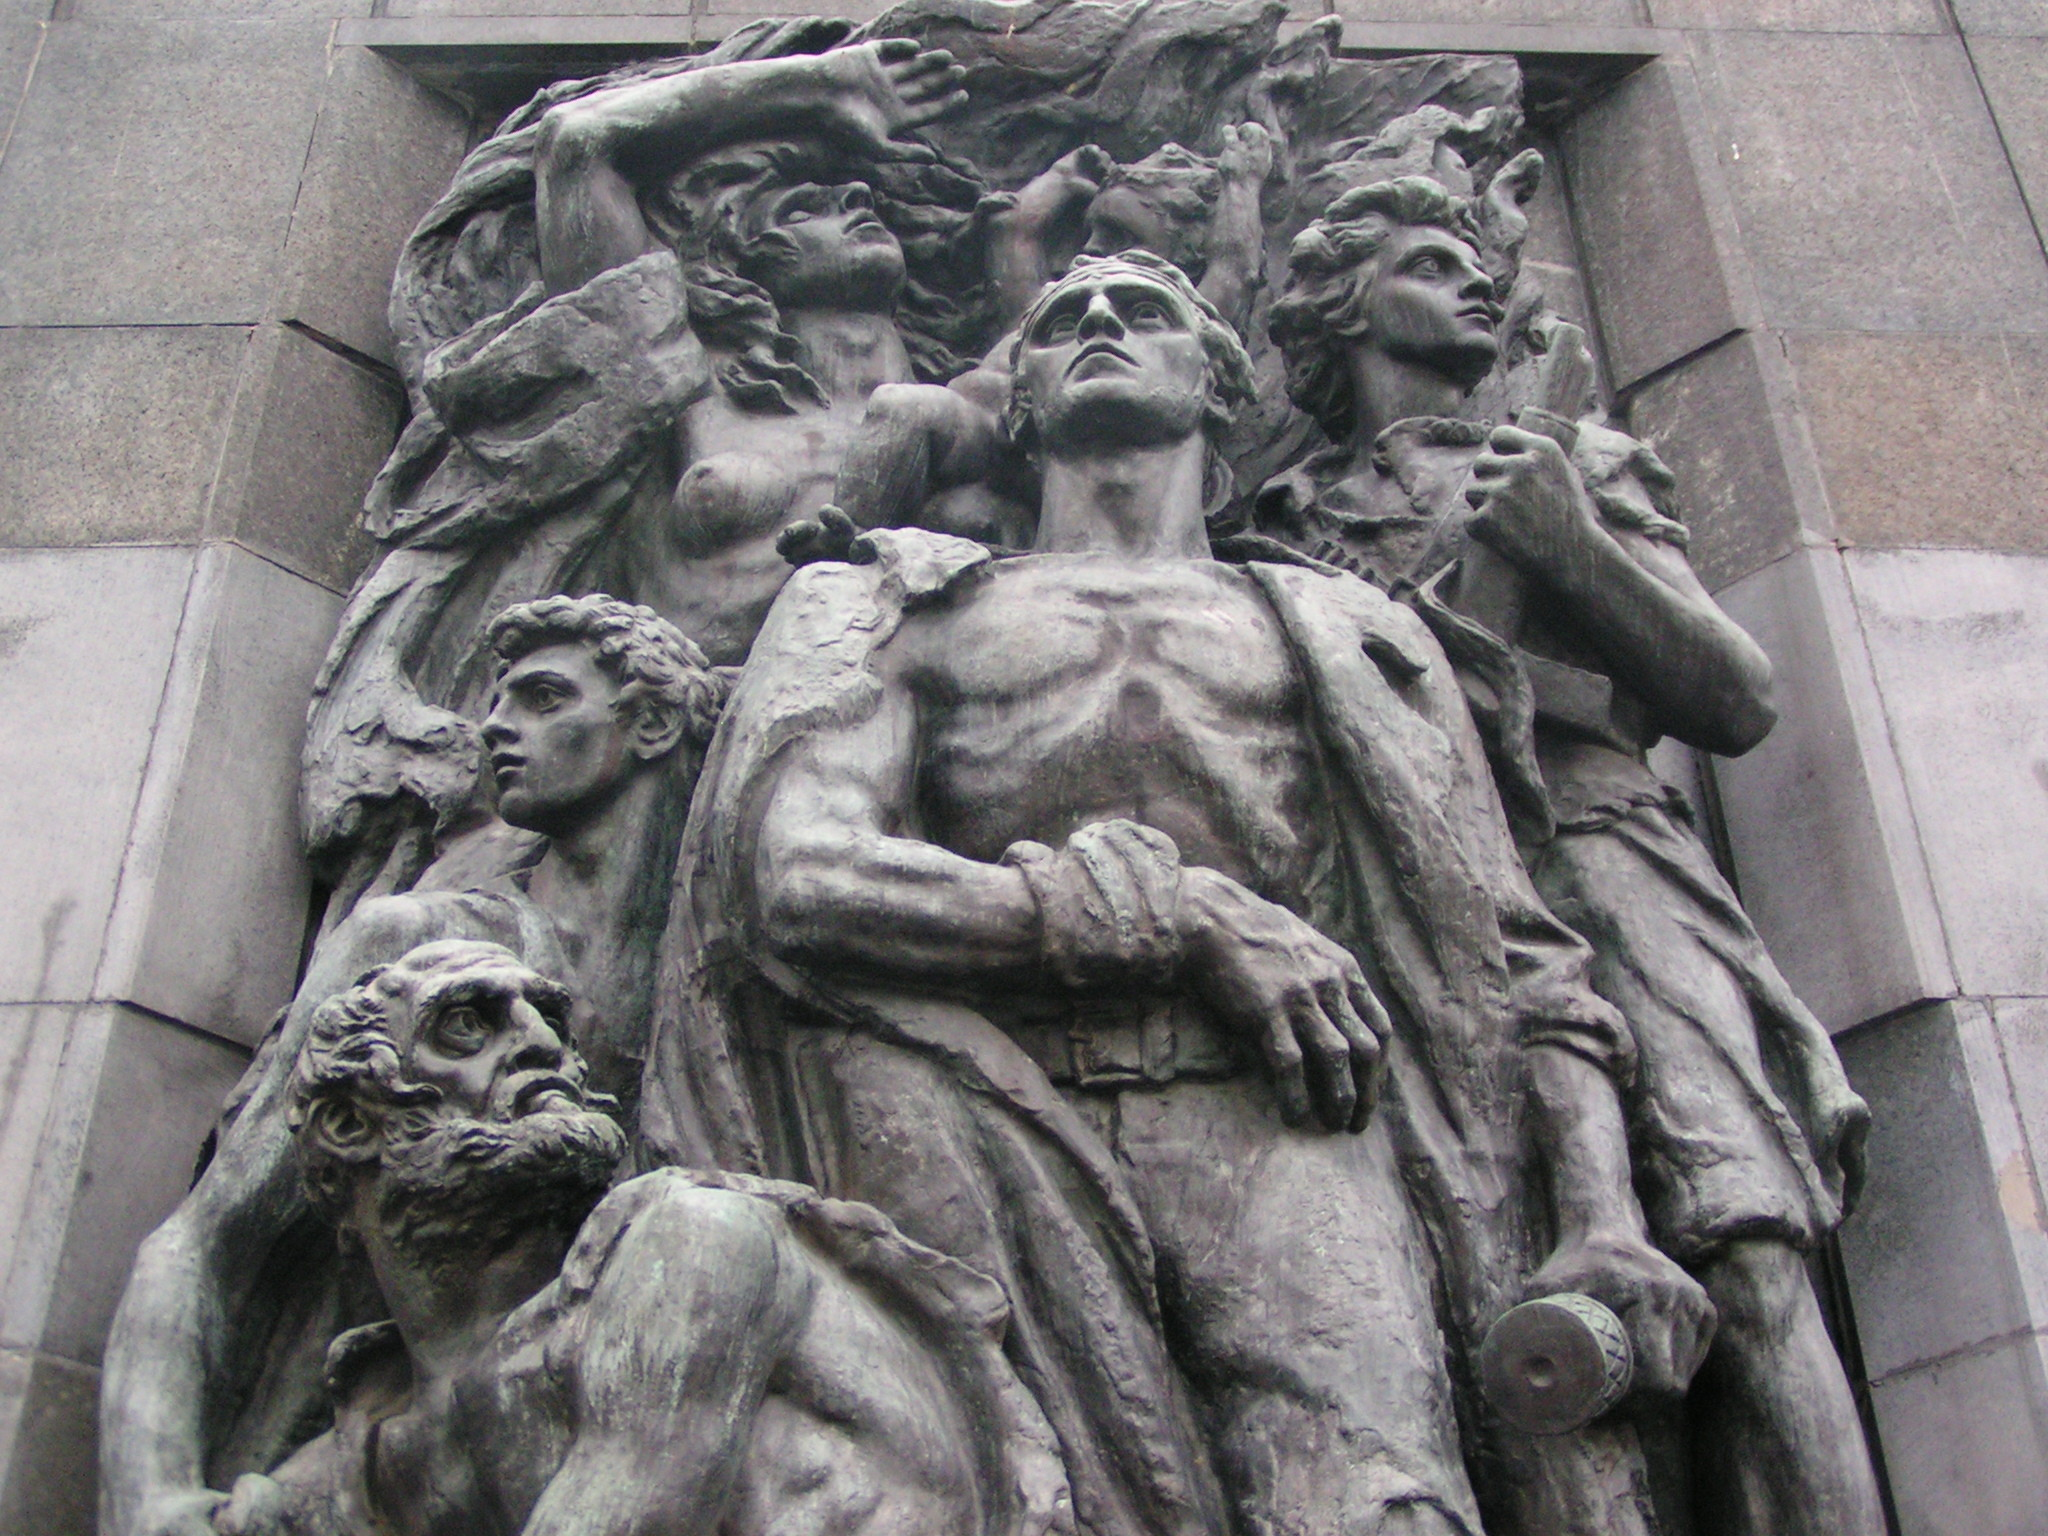 ghetto heroes monument sightseeing warsaw